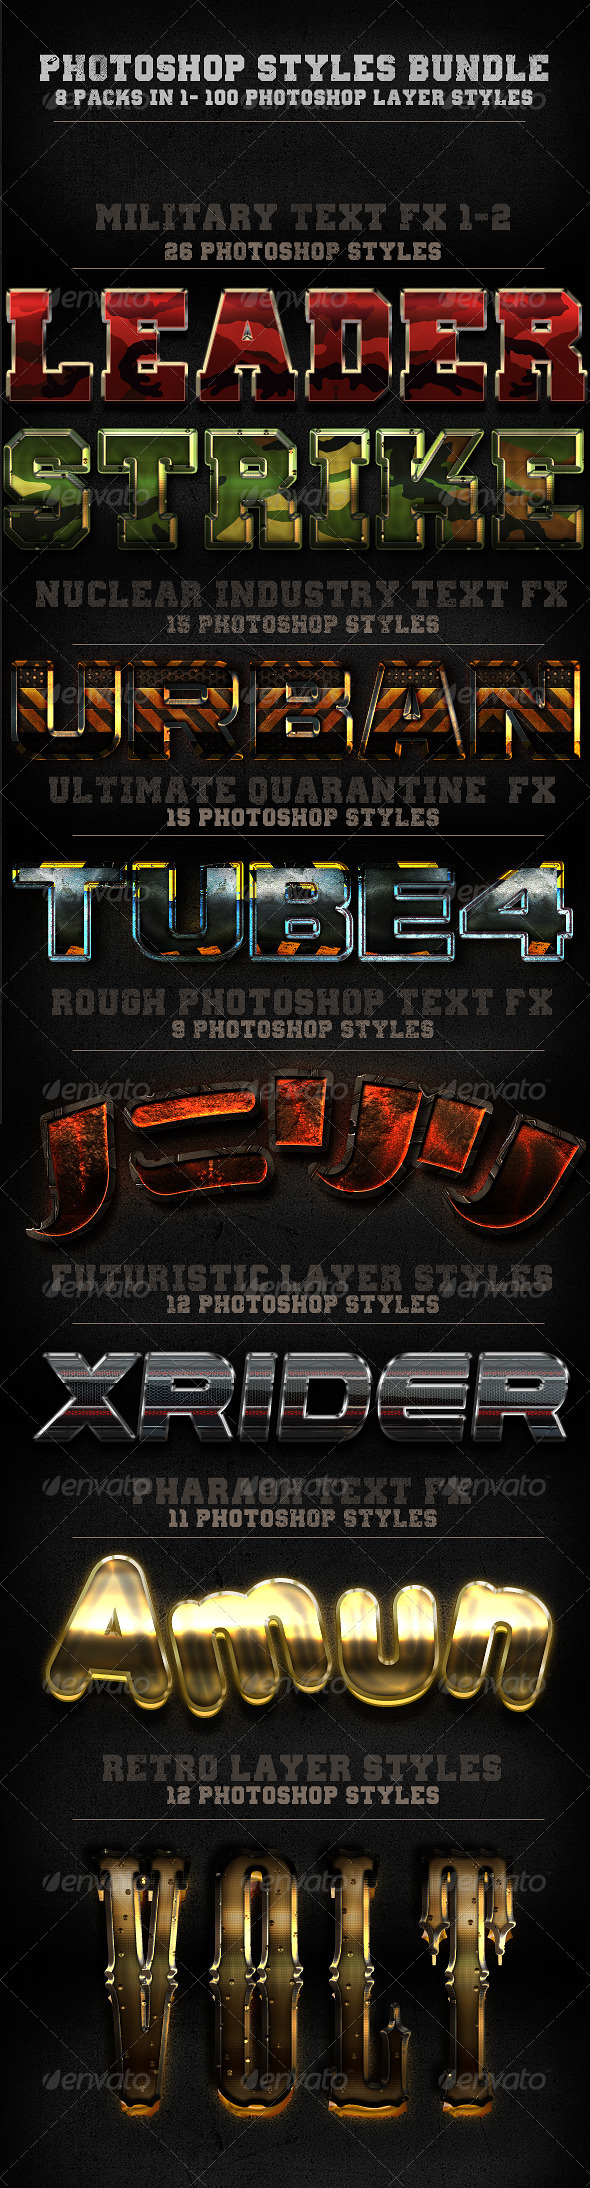 GraphicRiver 100 Photohop Styles 8 In 1-The Bundle 5951542